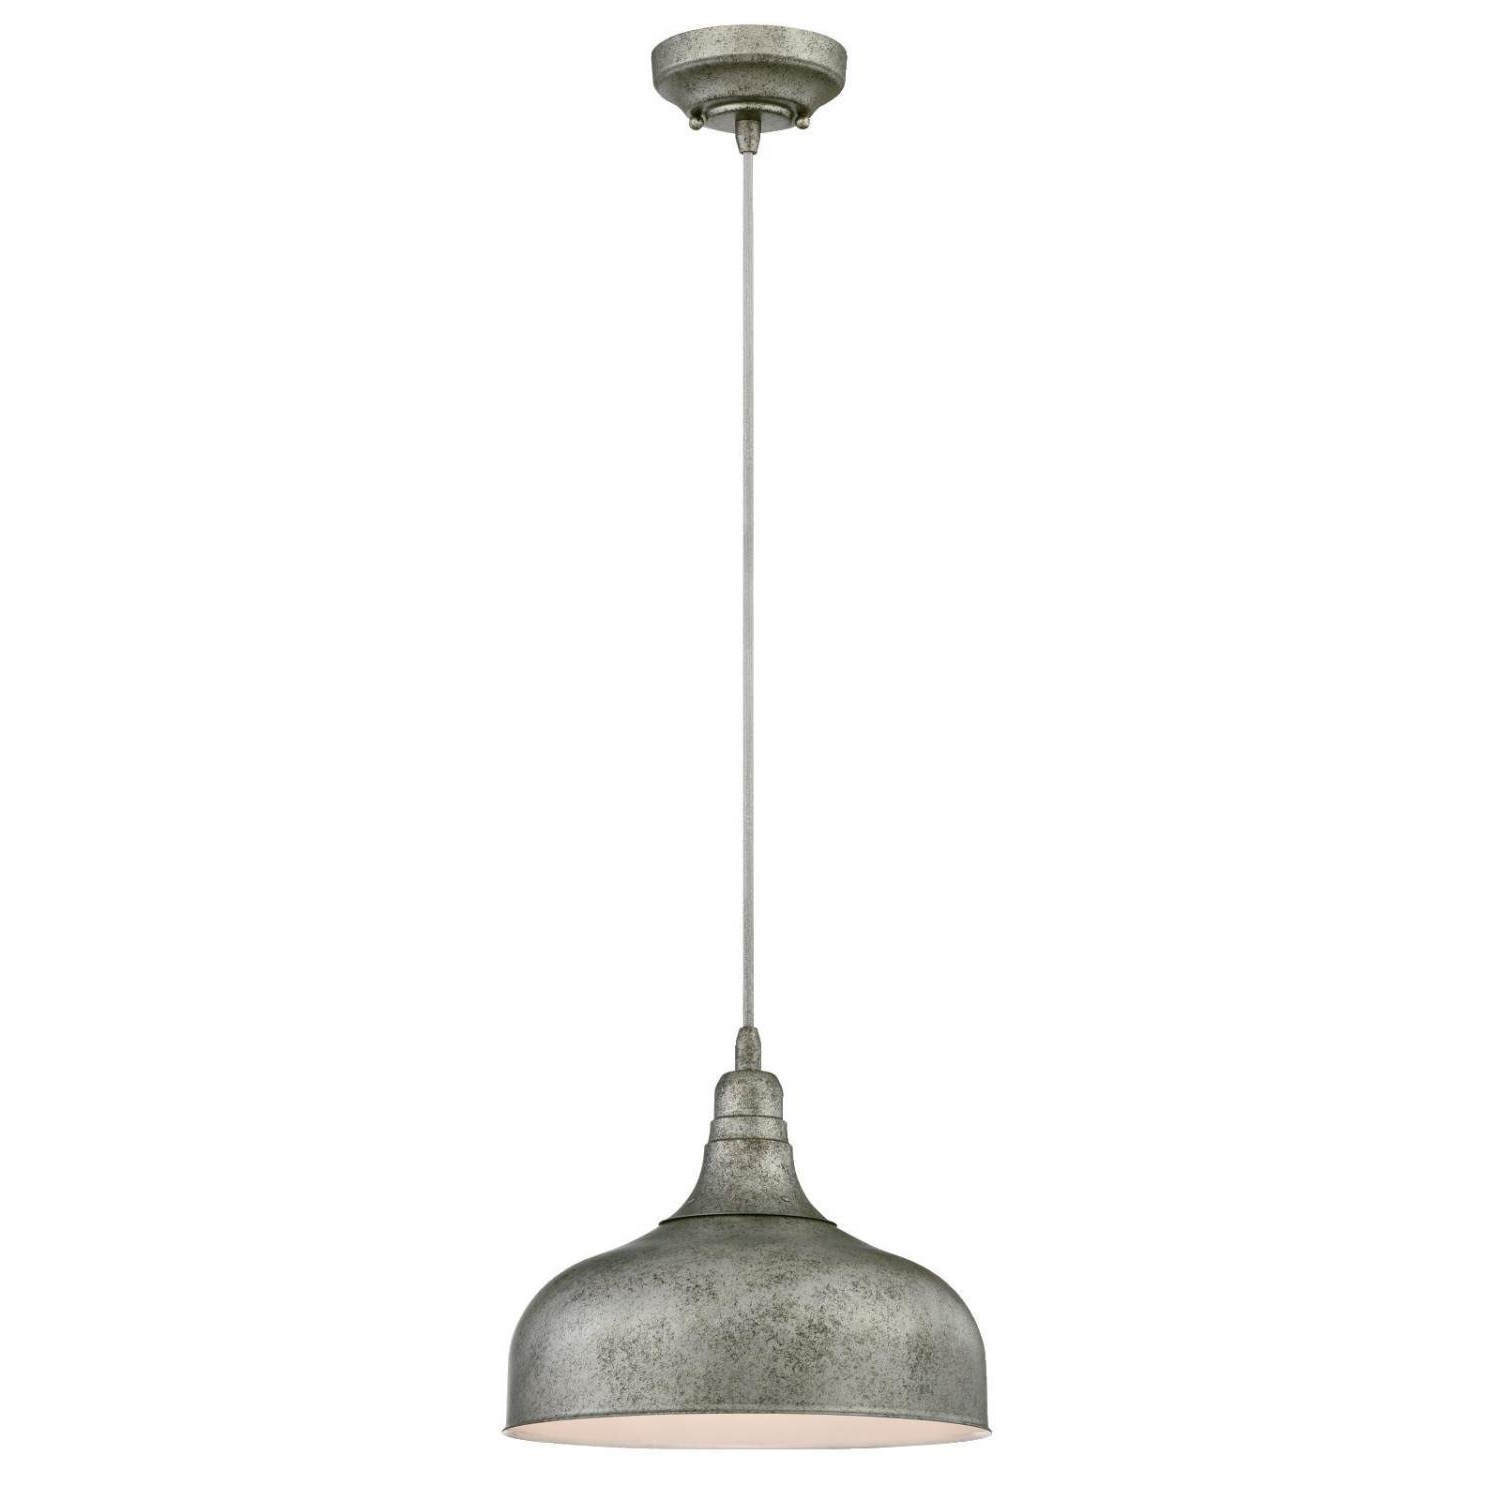 Well Liked Stetson 1 Light Bowl Pendants Pertaining To Burwan 1 Light Single Dome Pendant (Gallery 17 of 20)